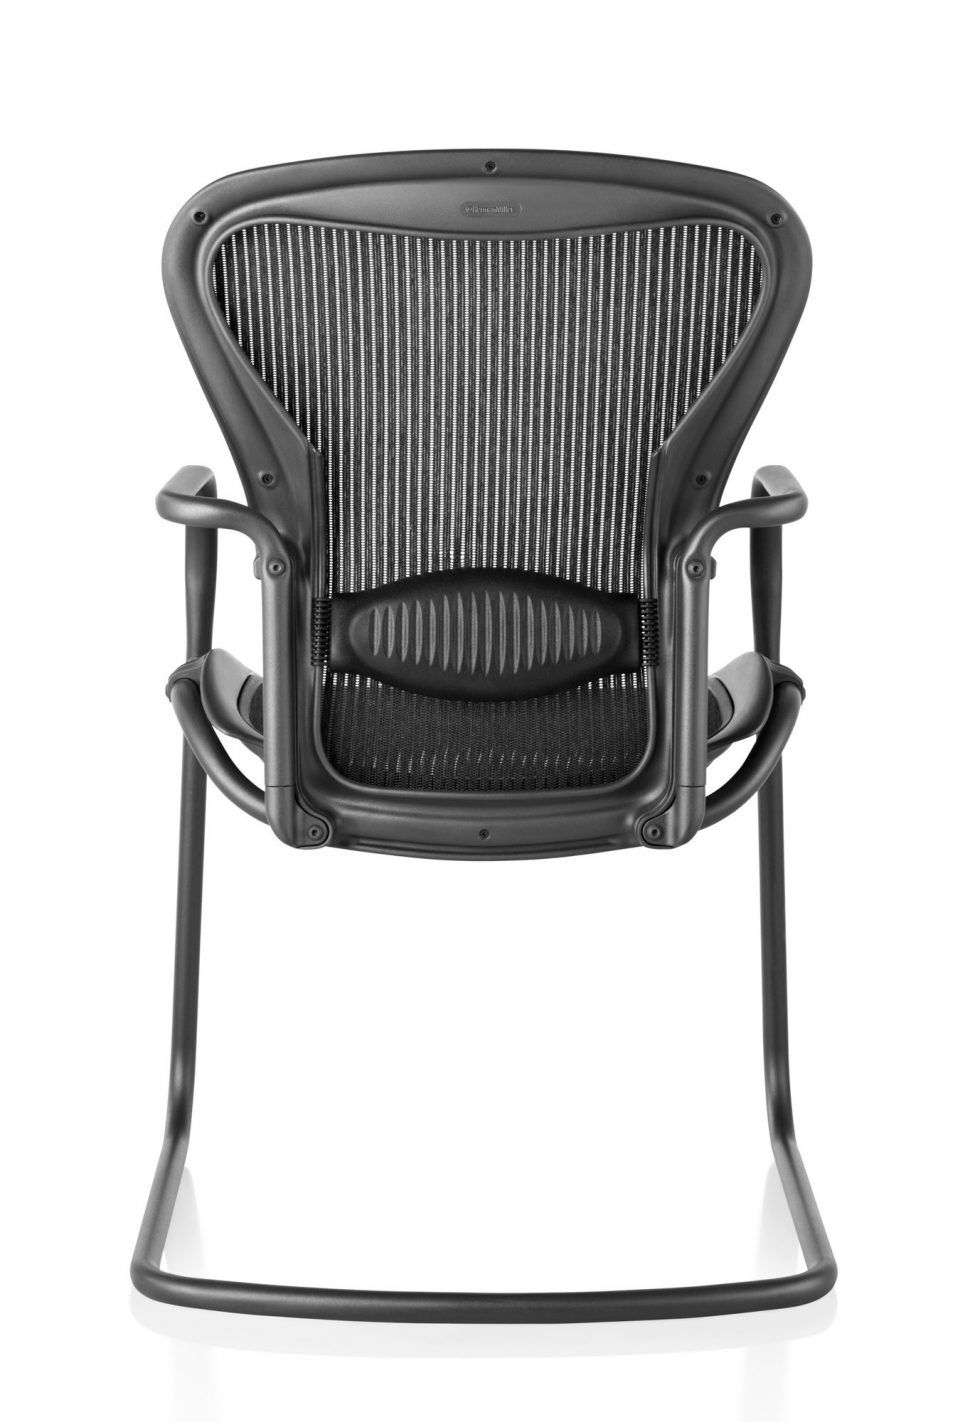 herman miller chairs seattle replacement mesh slings for patio aeron grosse diagramm stuhl executive vintage stuhle